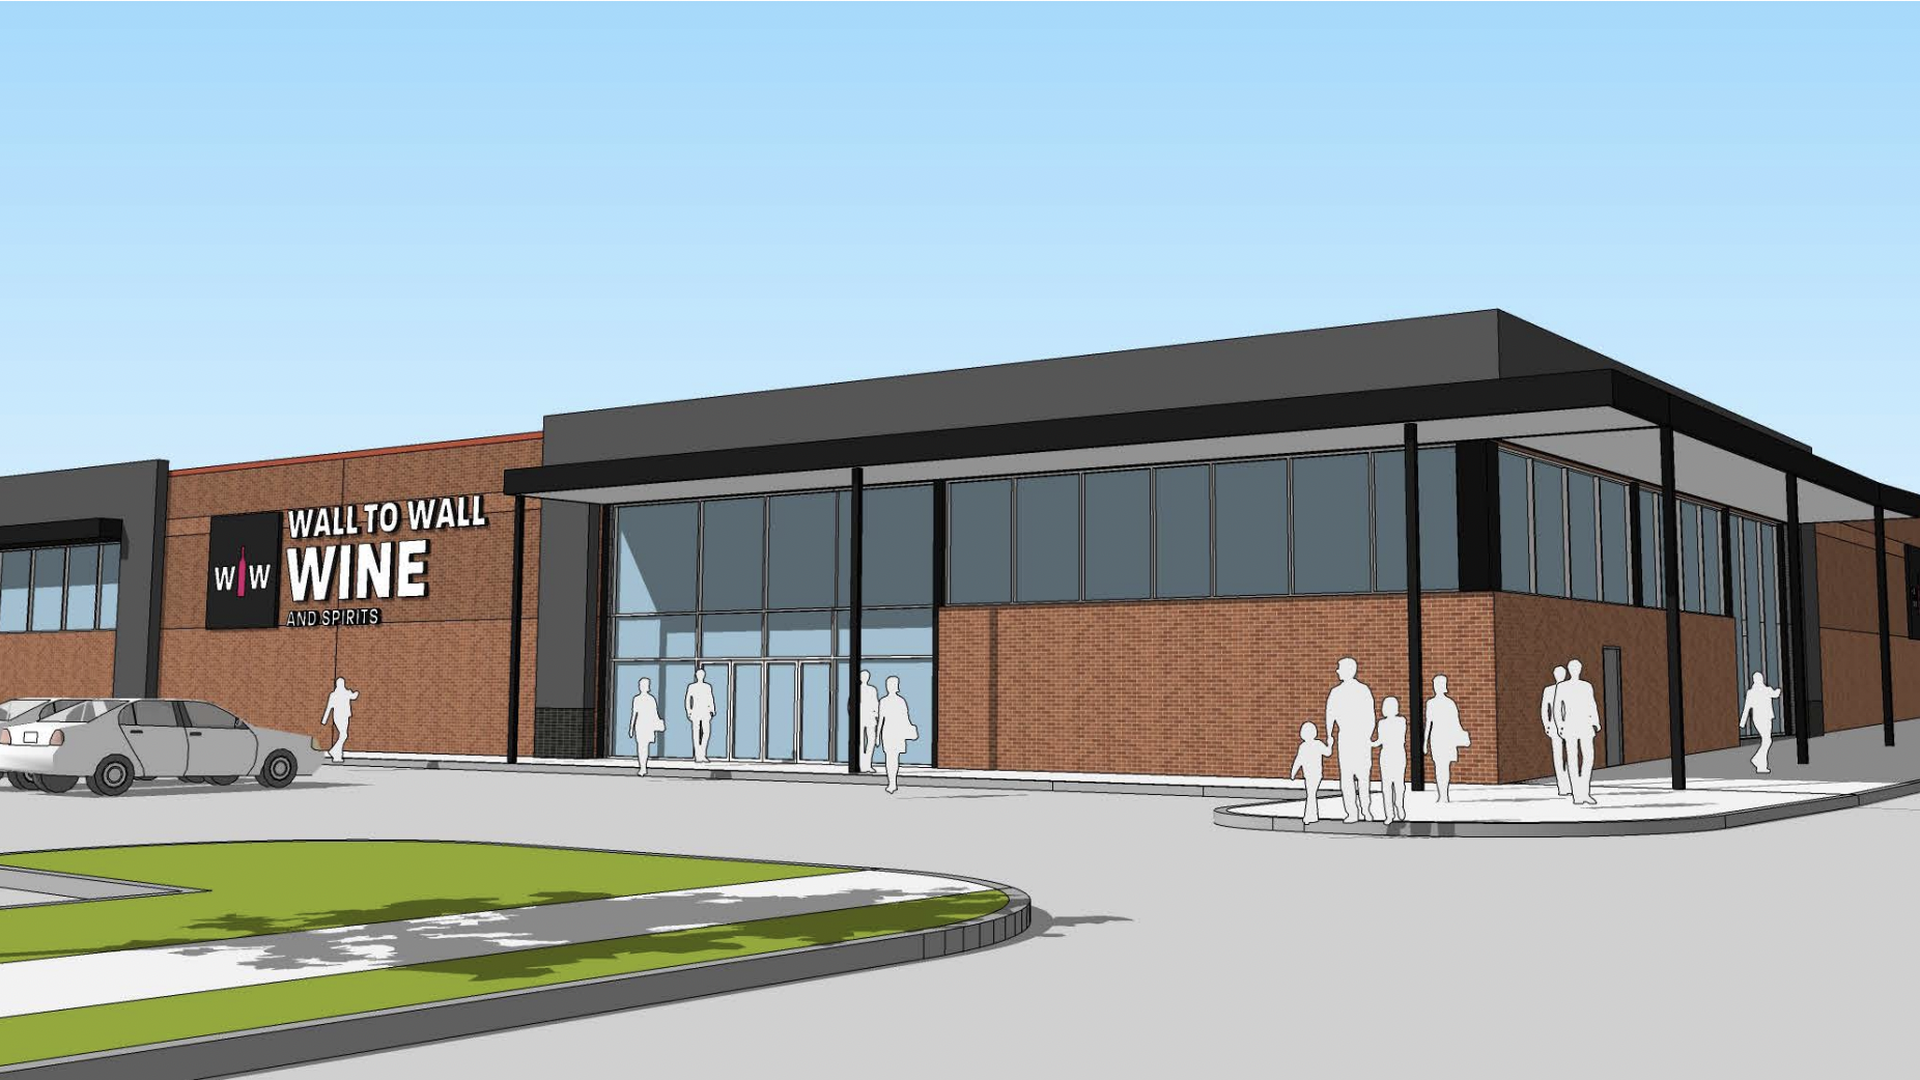 A rendering of Hy-Vee's new Wall to Wall Wine and Spirits concept store.